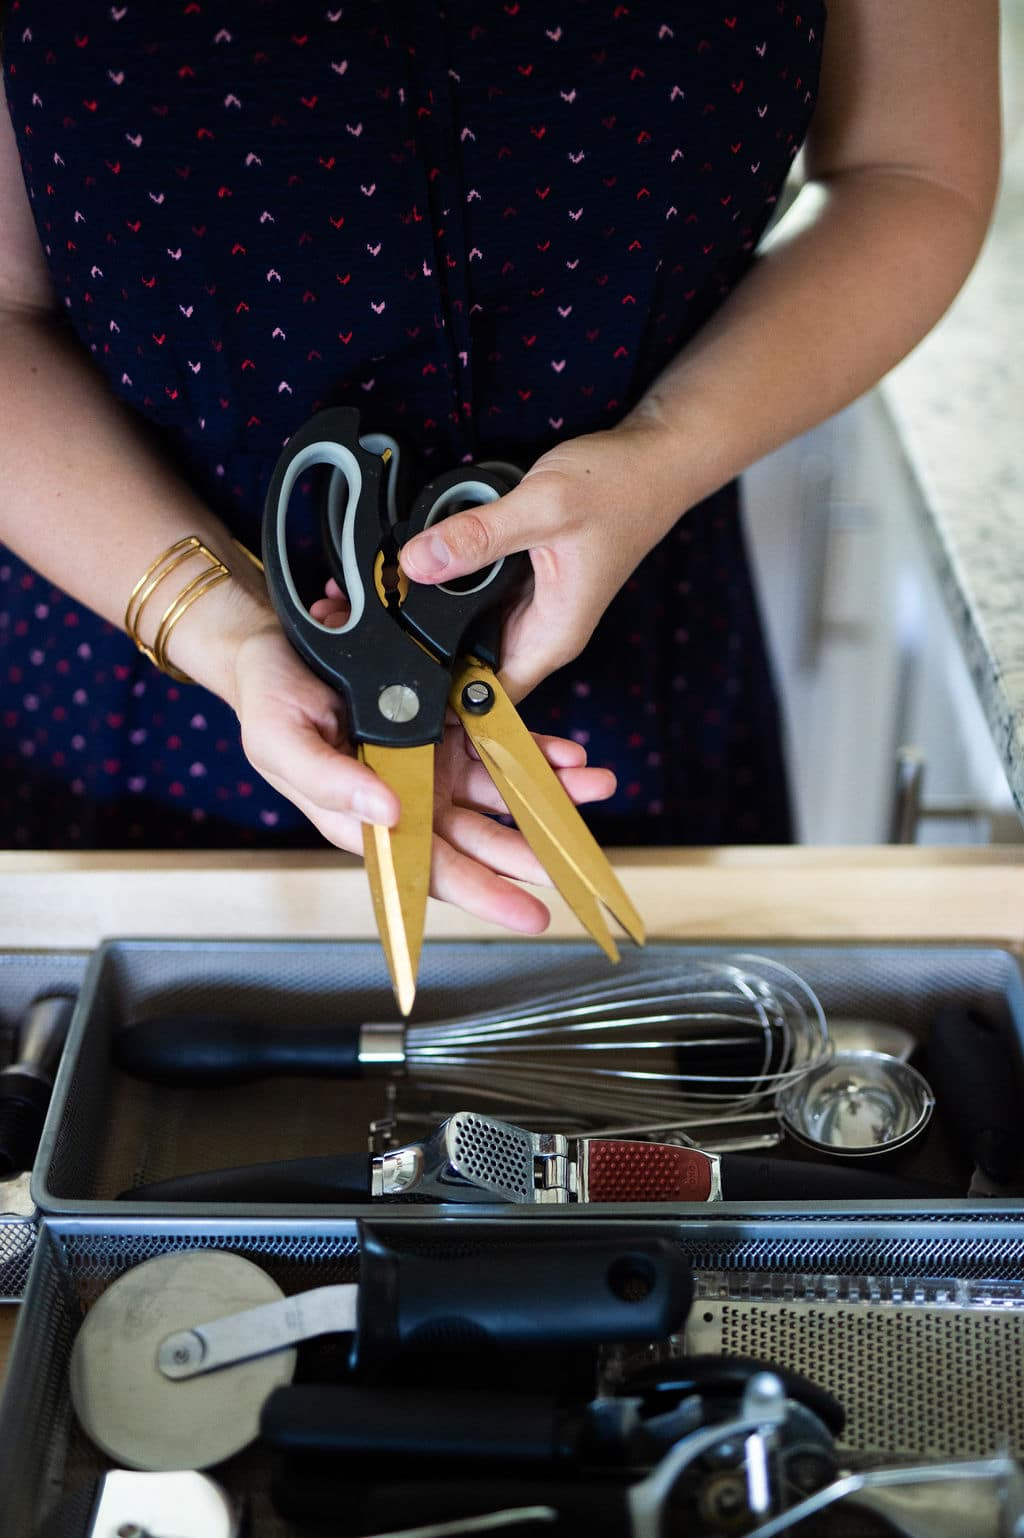 Hands holding set of gold scissors over open kitchen drawer.